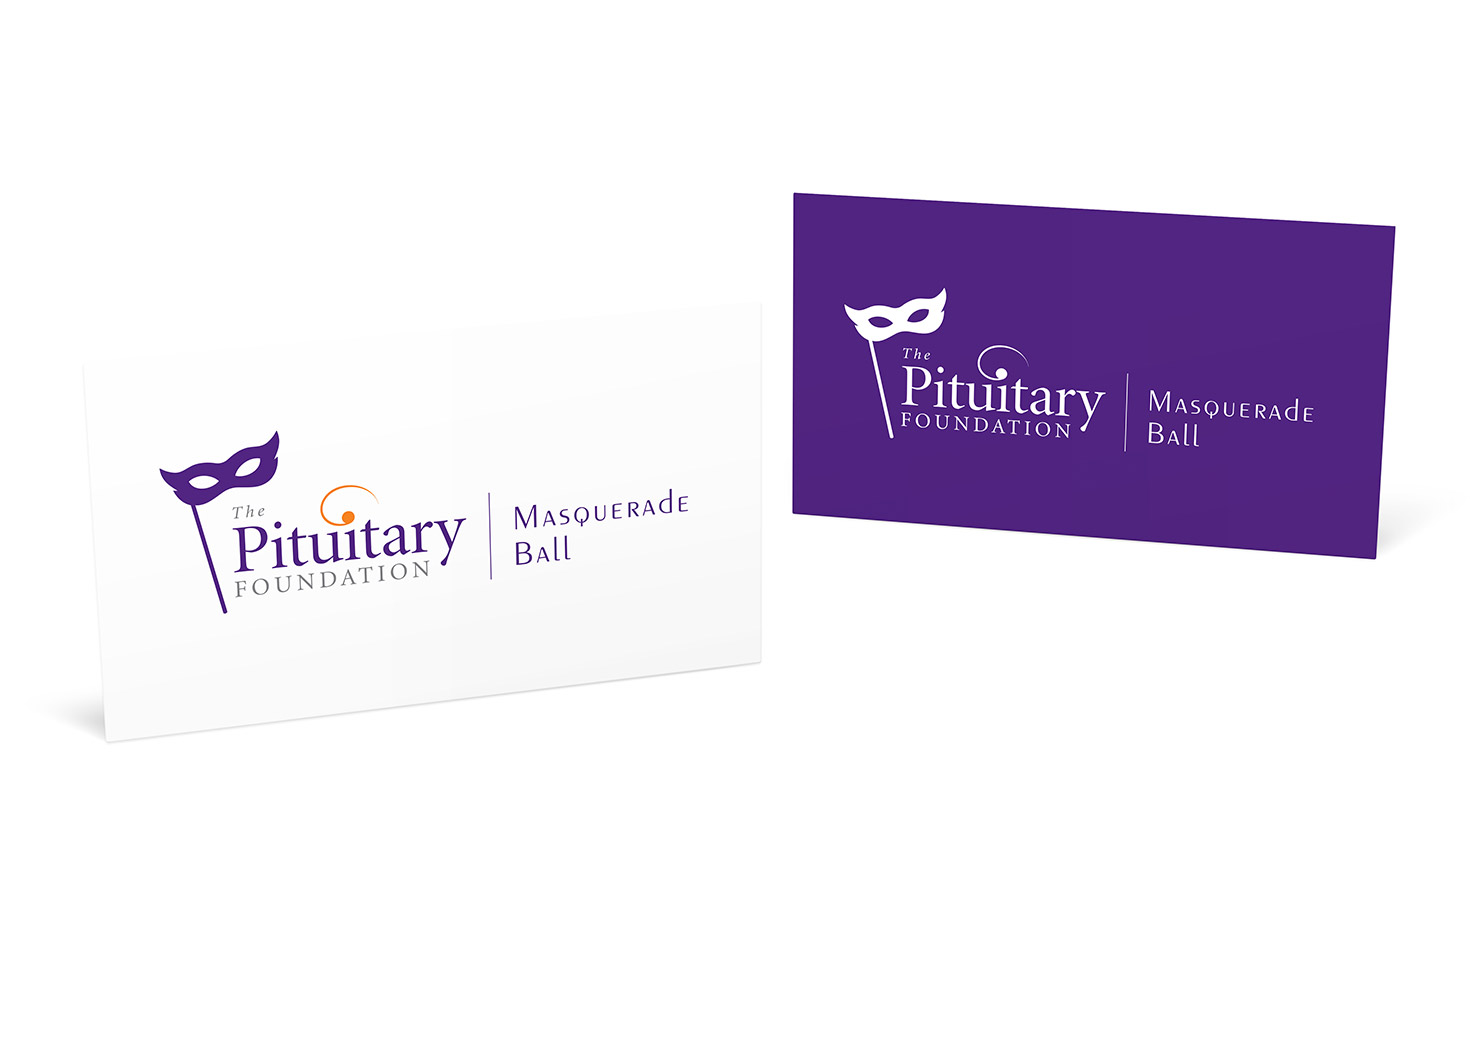 Client: The Pituitary Foundation